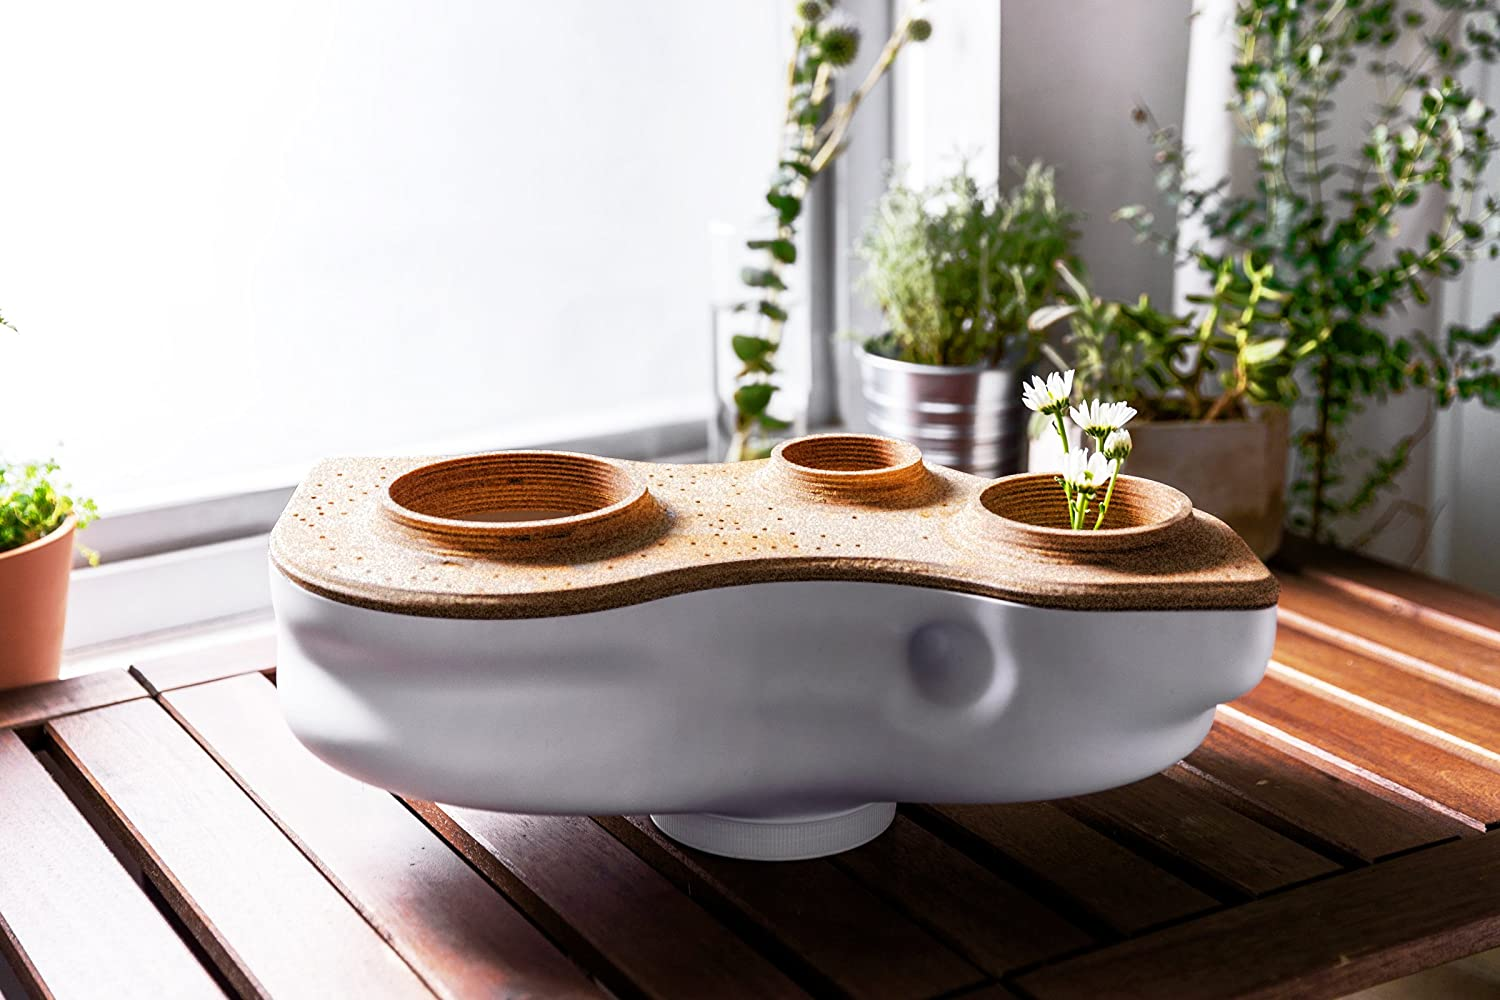 The Living Composter sitting on a wooden table next to houseplants.